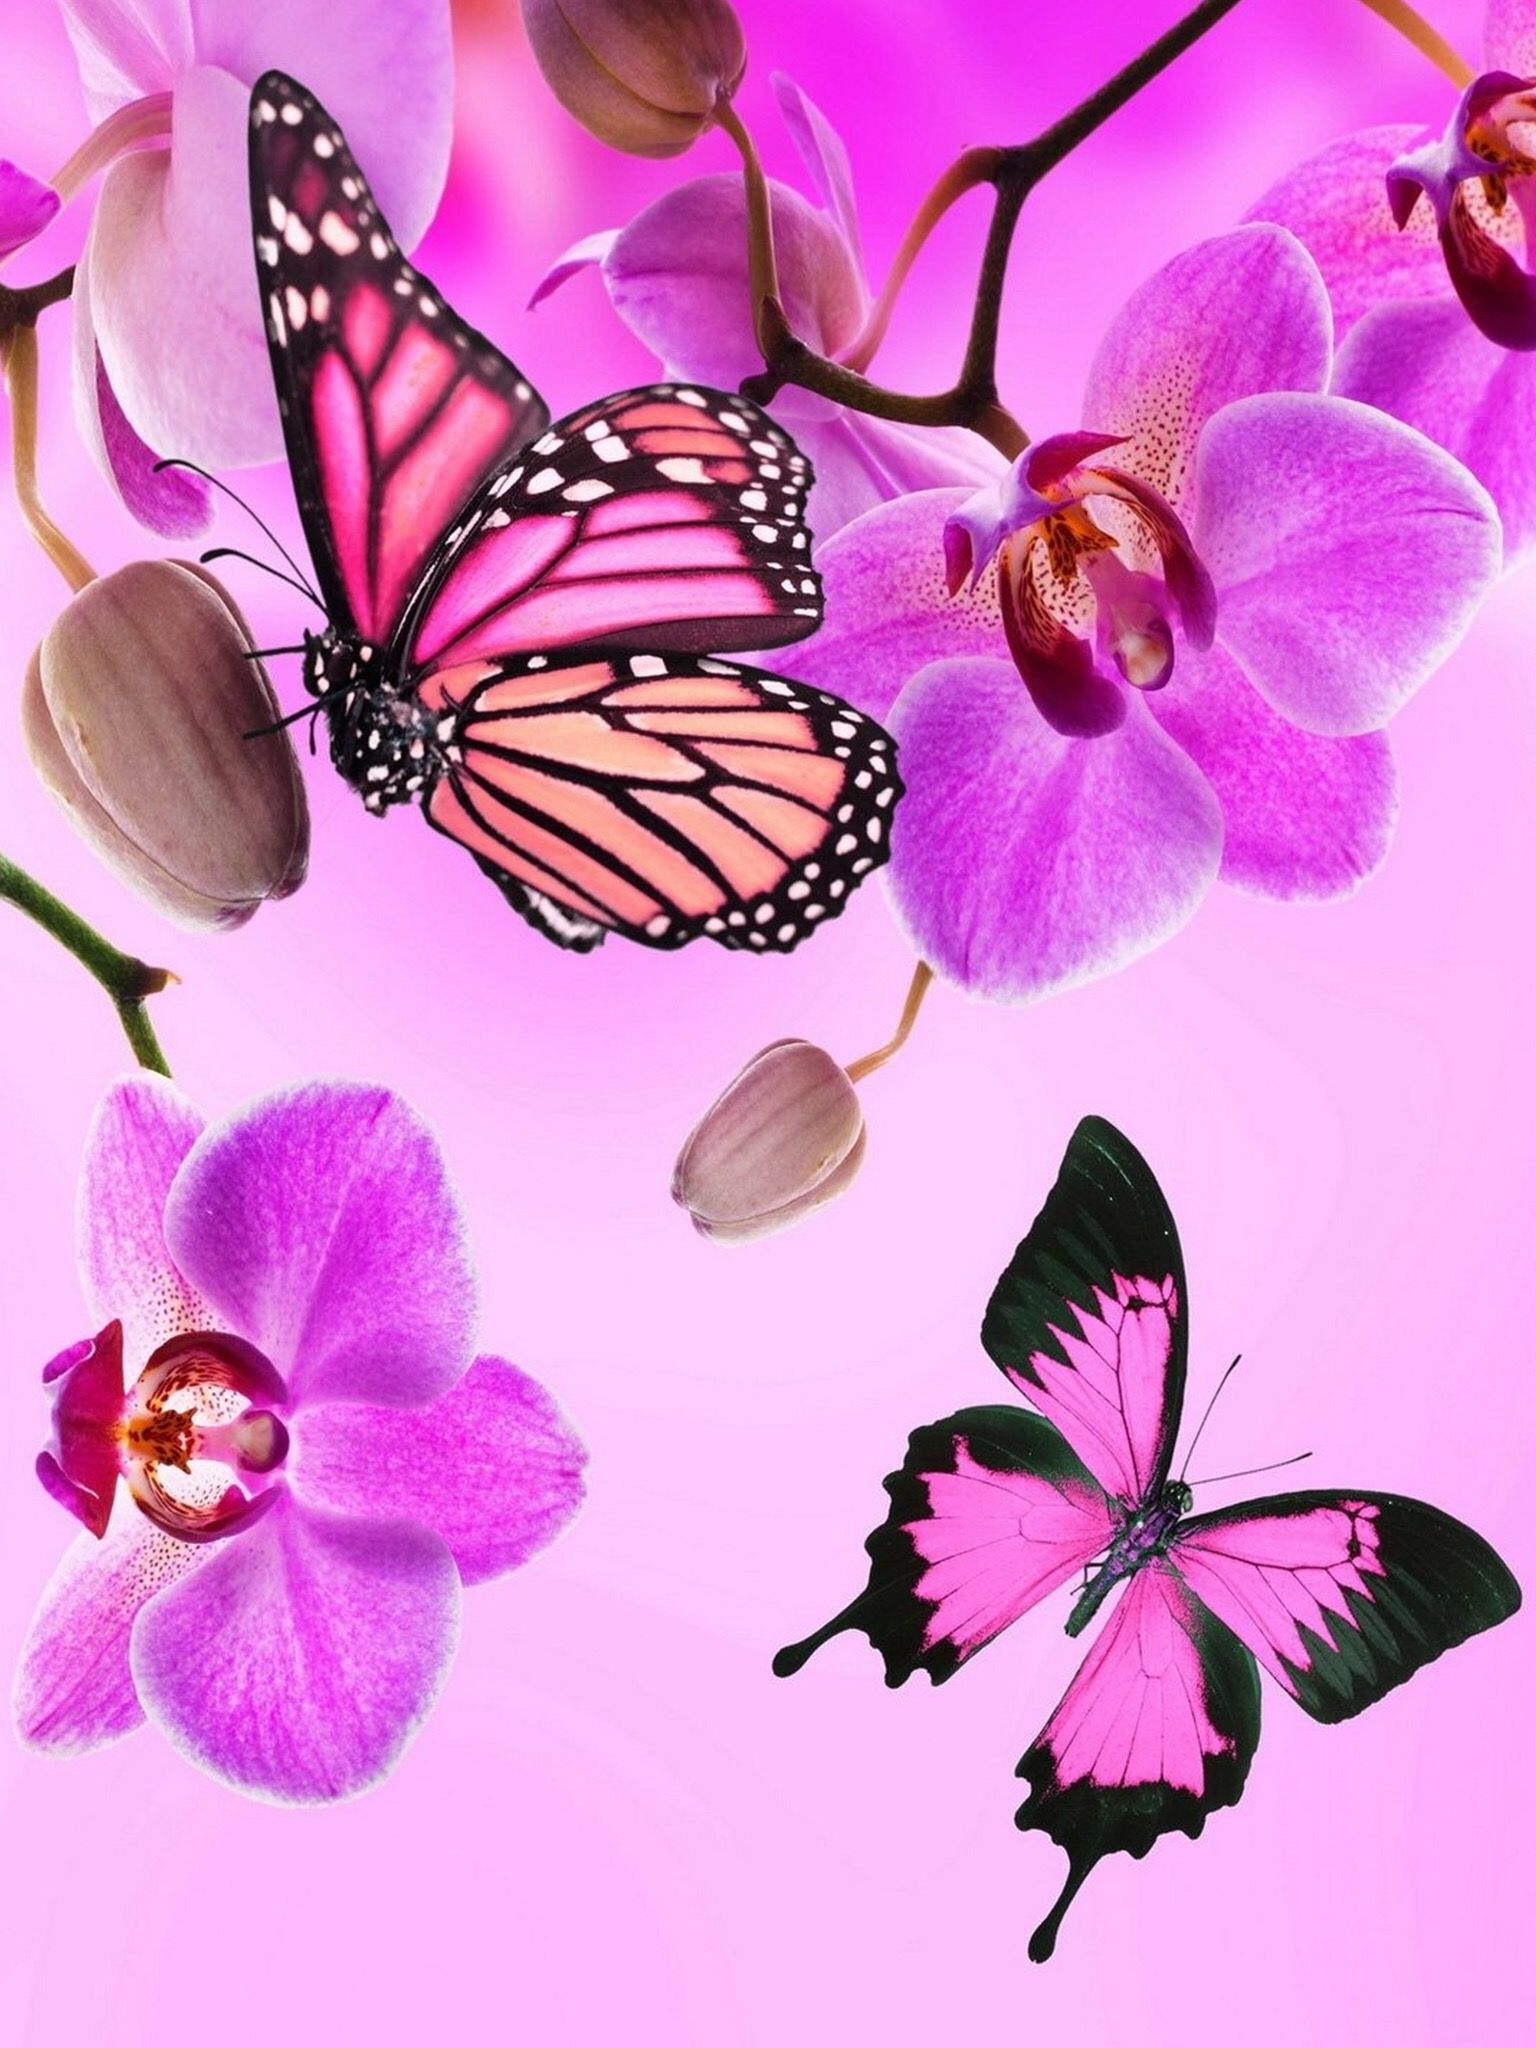 Pin by wendy wharton on butterfly wallpaper pinterest wallpaper stylish pink live wallpapers backgrounds hd quality girly theme lock screen wallpaper on the app store altavistaventures